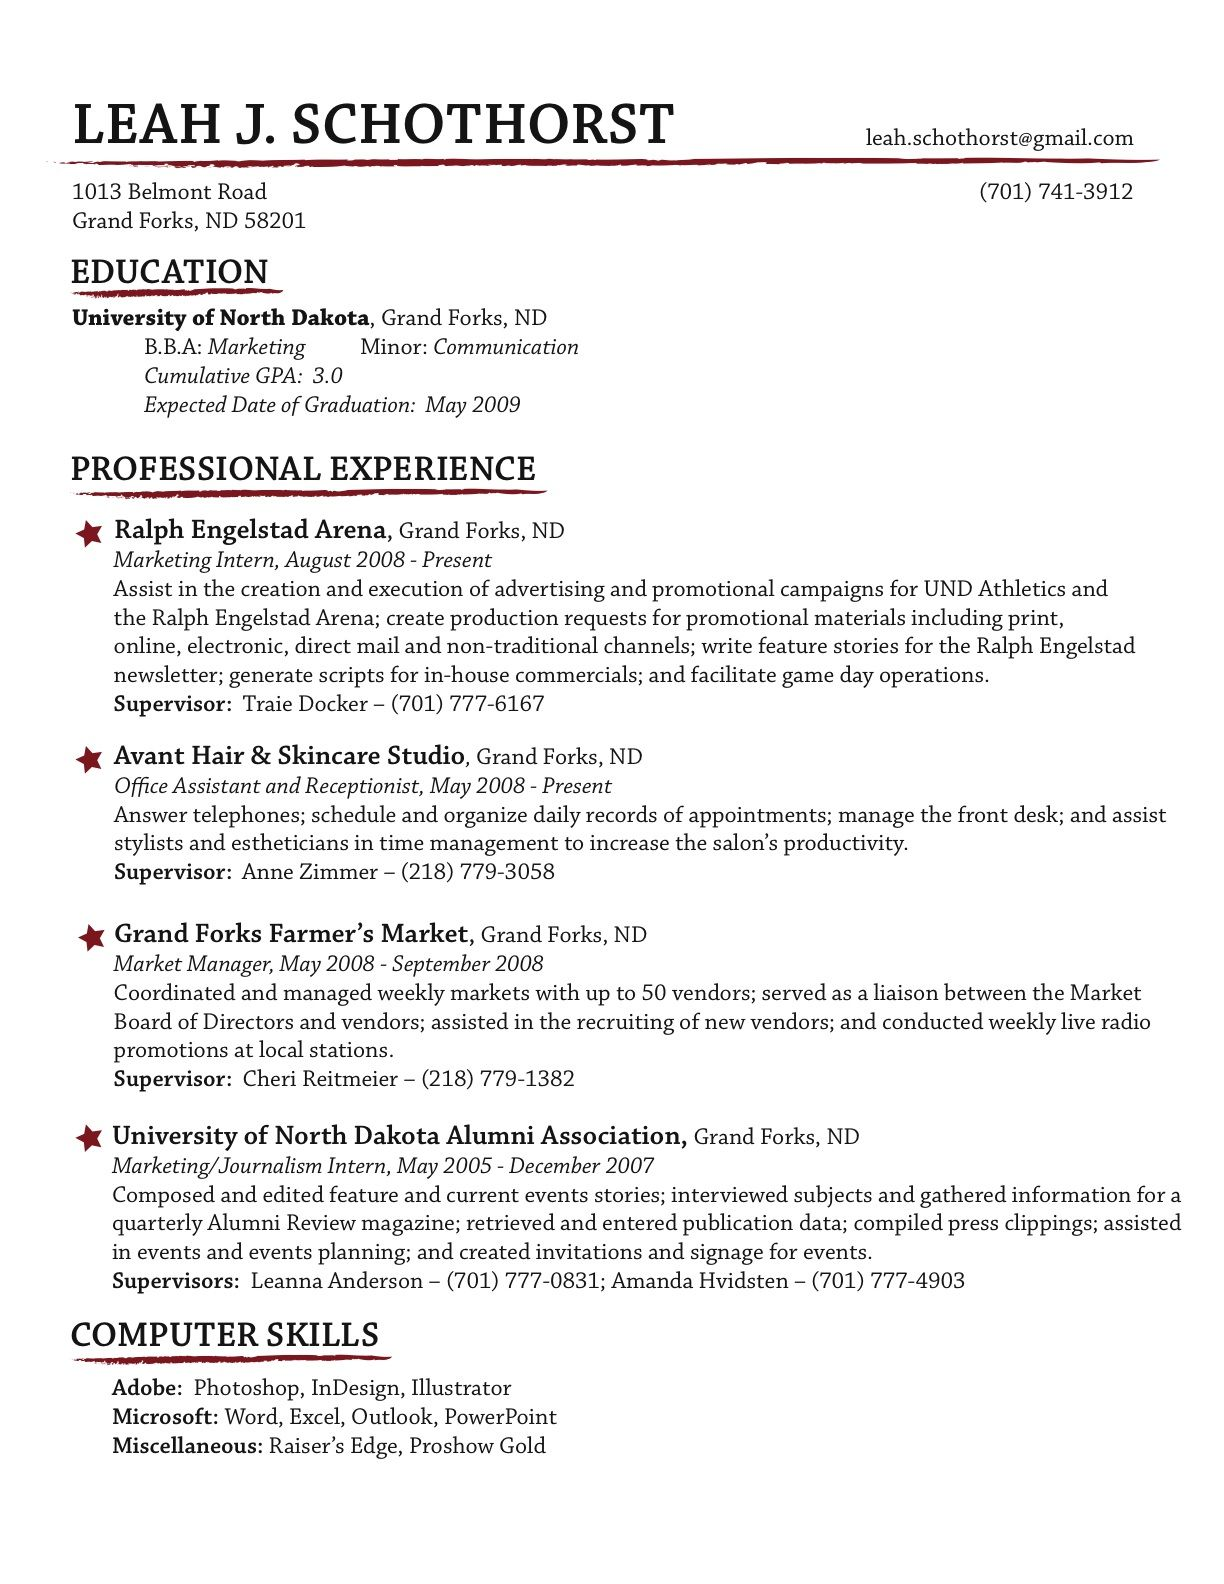 Creative Resume Would Do